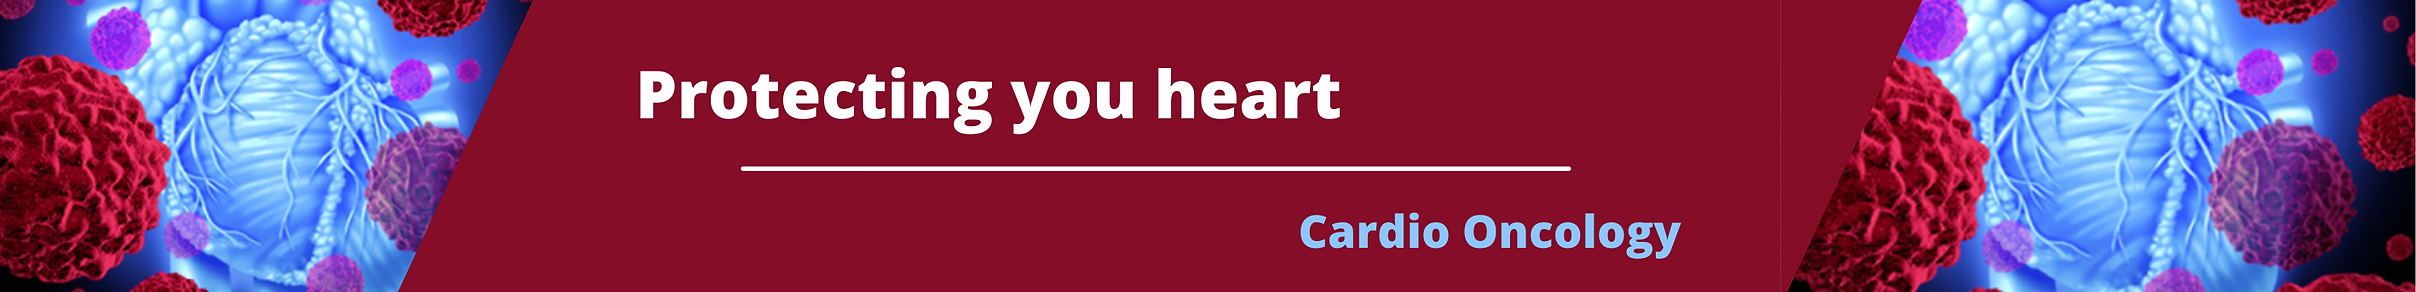 Cardio Oncology Banner.png